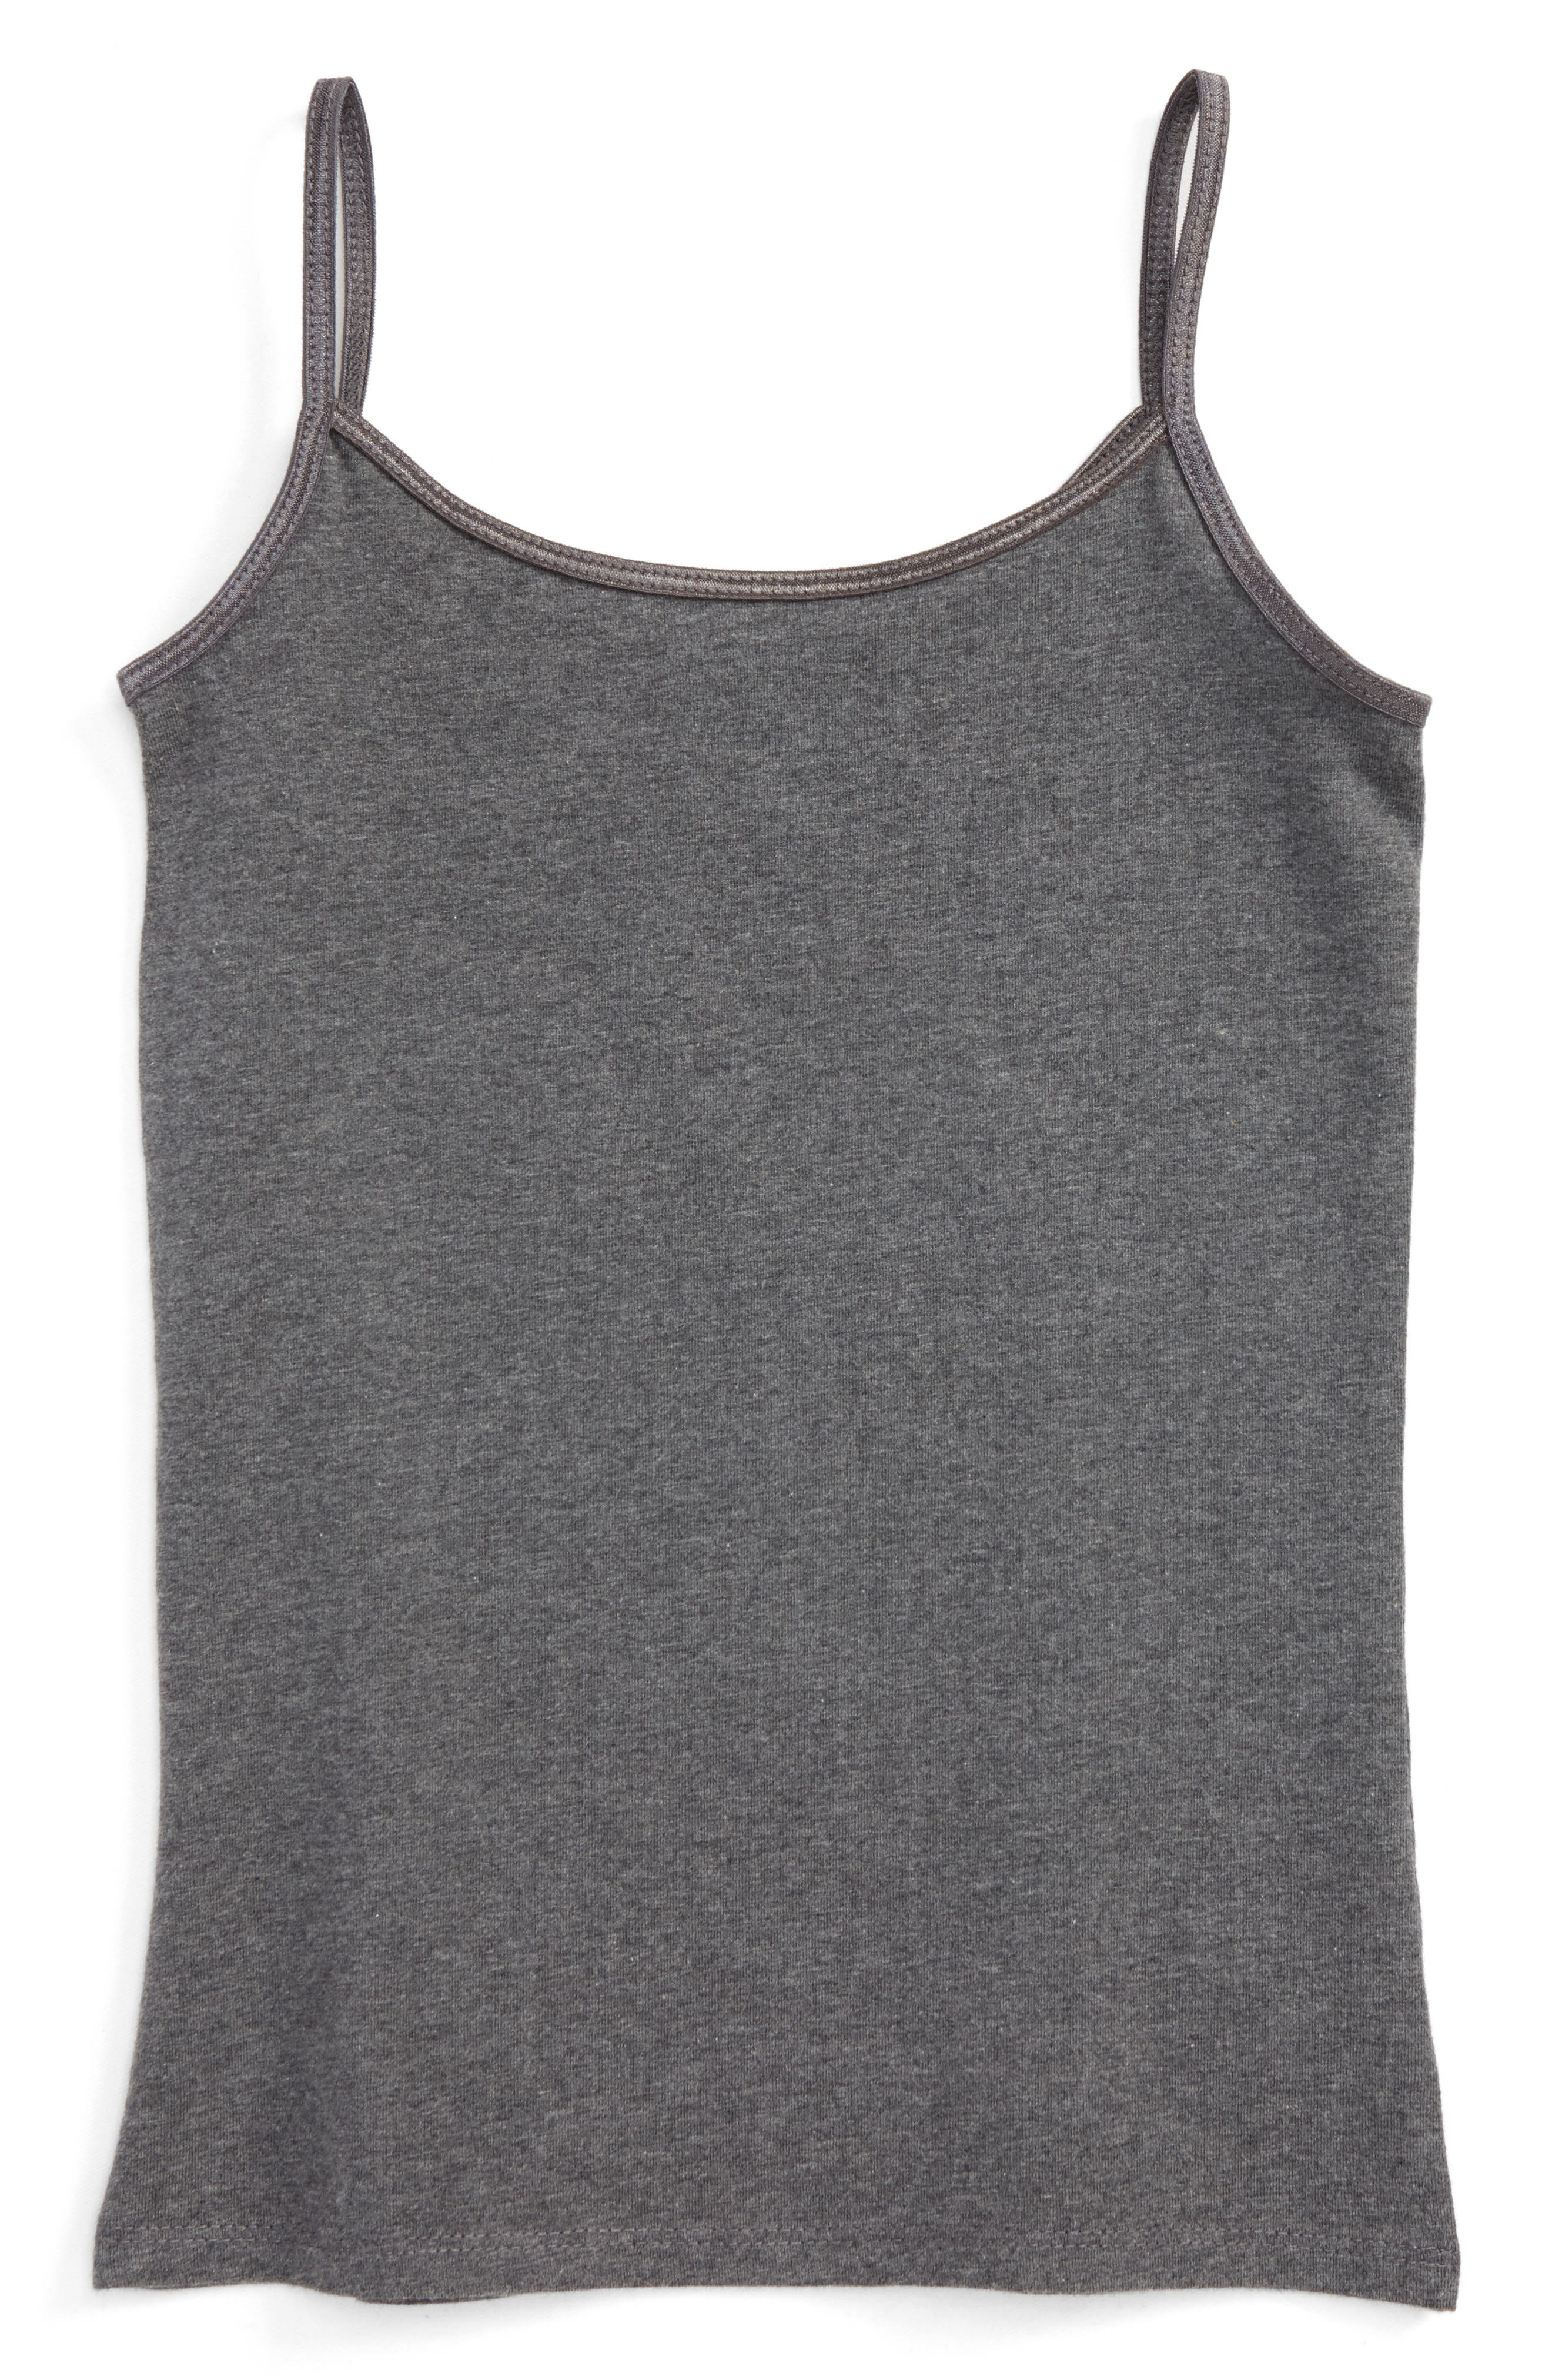 Heathered Long Camisole,                         Main,                         color, Grey Charcoal Heather